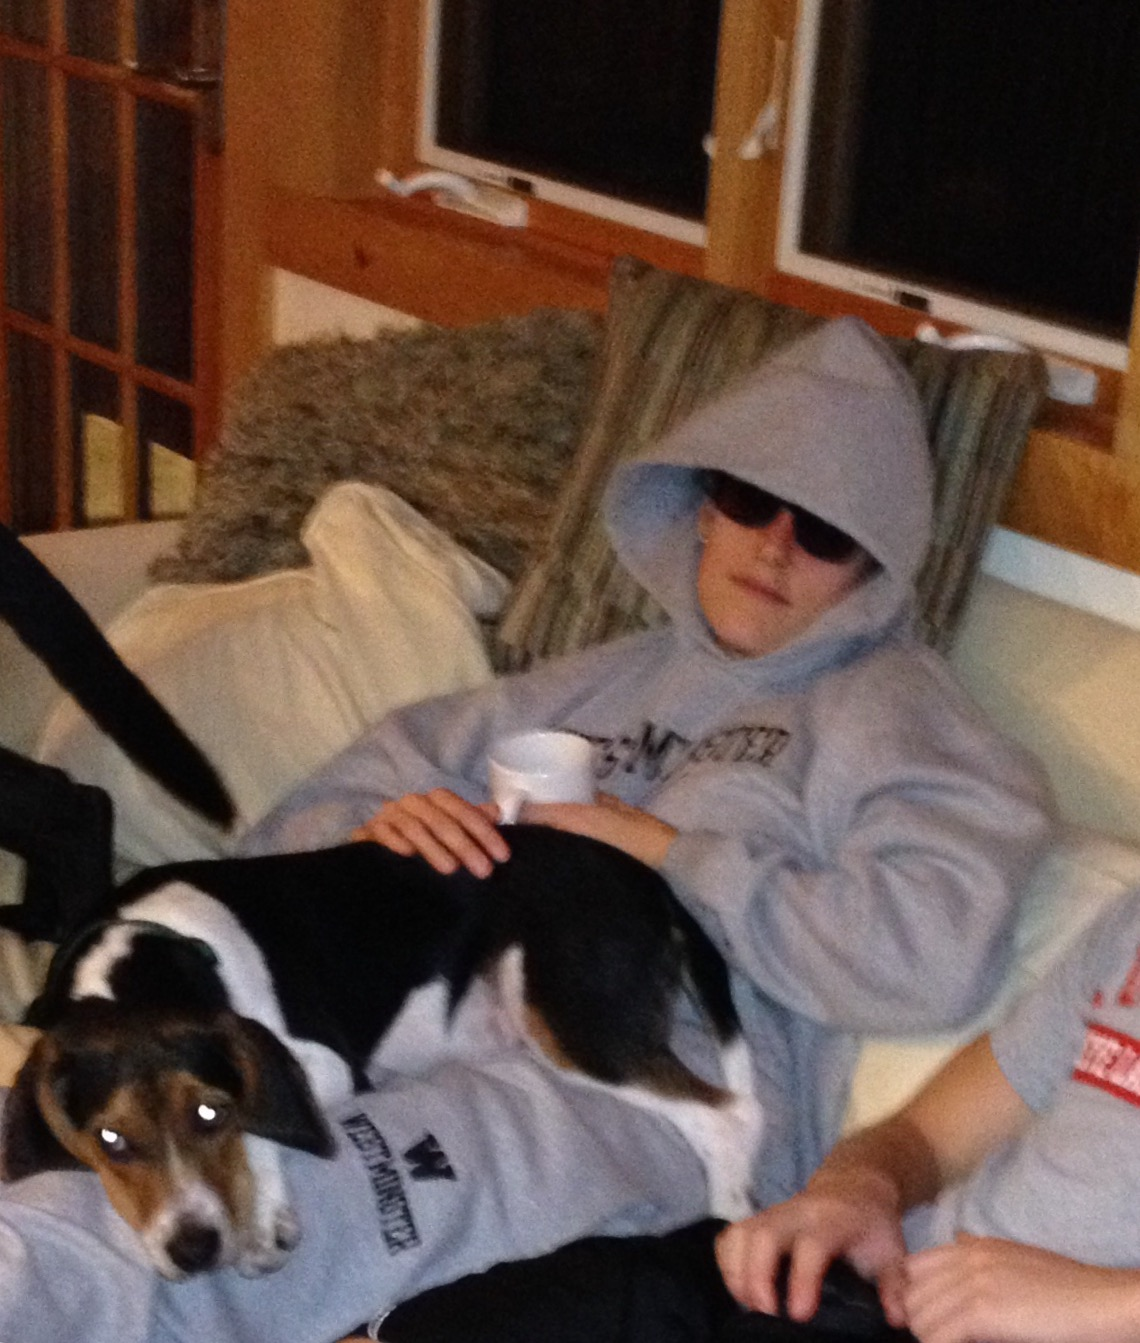 Me sporting a groutfit and shades with my dog, wilson, during the cognitive rest phase of my recovery.